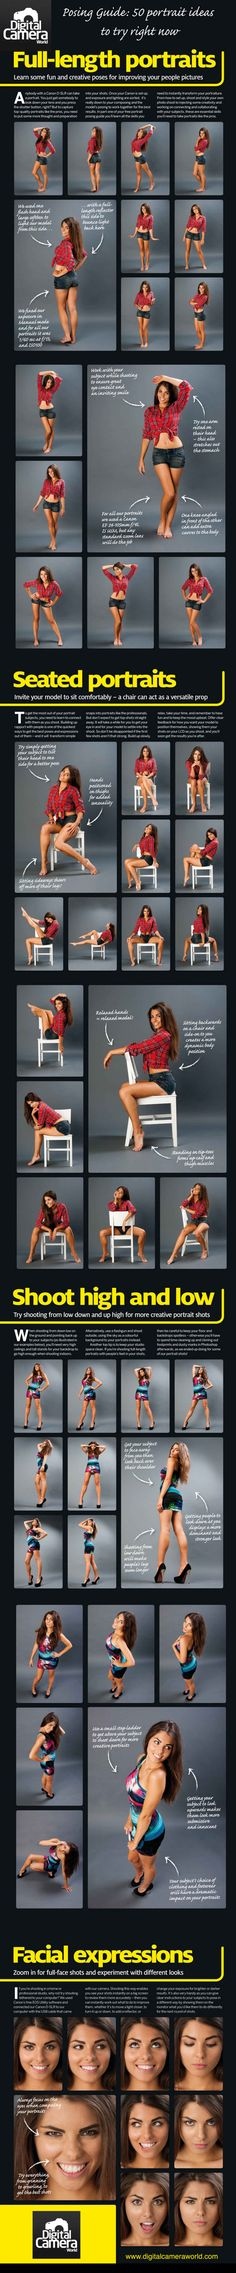 Most people don't know how to pose when it comes to portrait pictures and you see many amateur and unprofessional models because they don't look confident in their pictures. This infographic DigitalCameraWorld goes through 50 different poses which will liven up your pictures. The infographic is clearly aimed at women but hey you guys can also do them, if you're into that sort of thing.